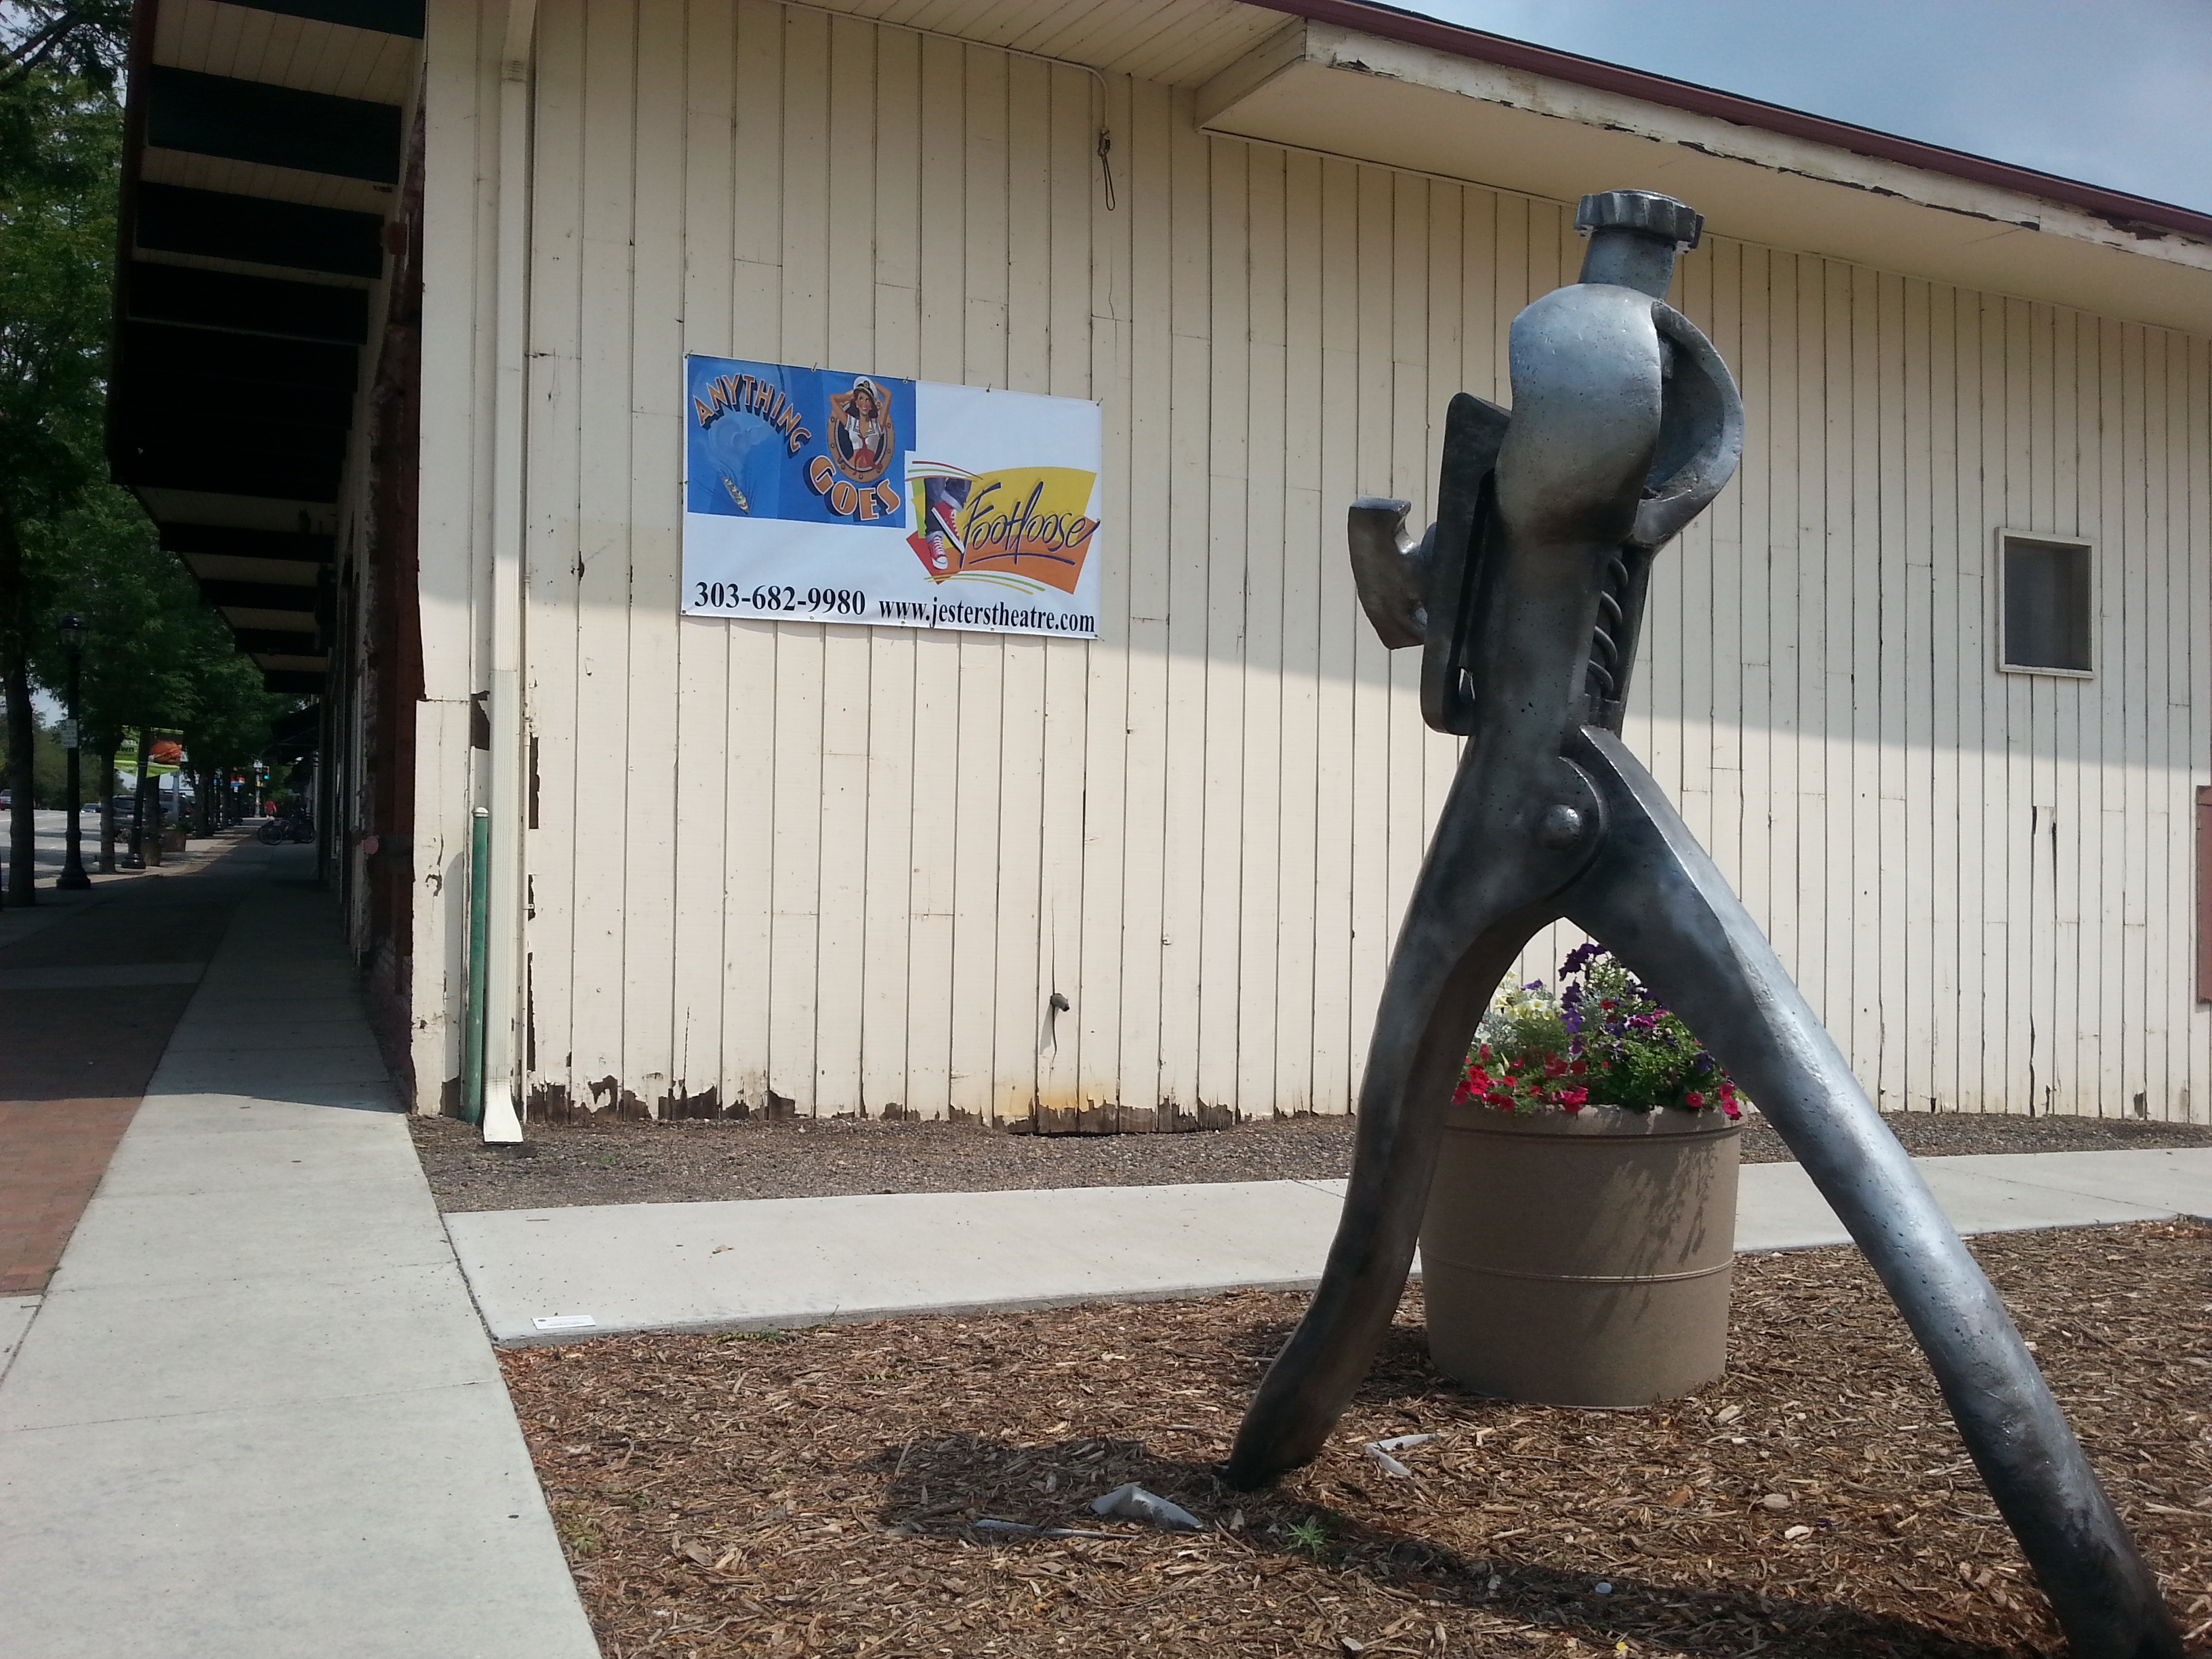 Sculpture in Jesters parking lot, adjacent to theatre